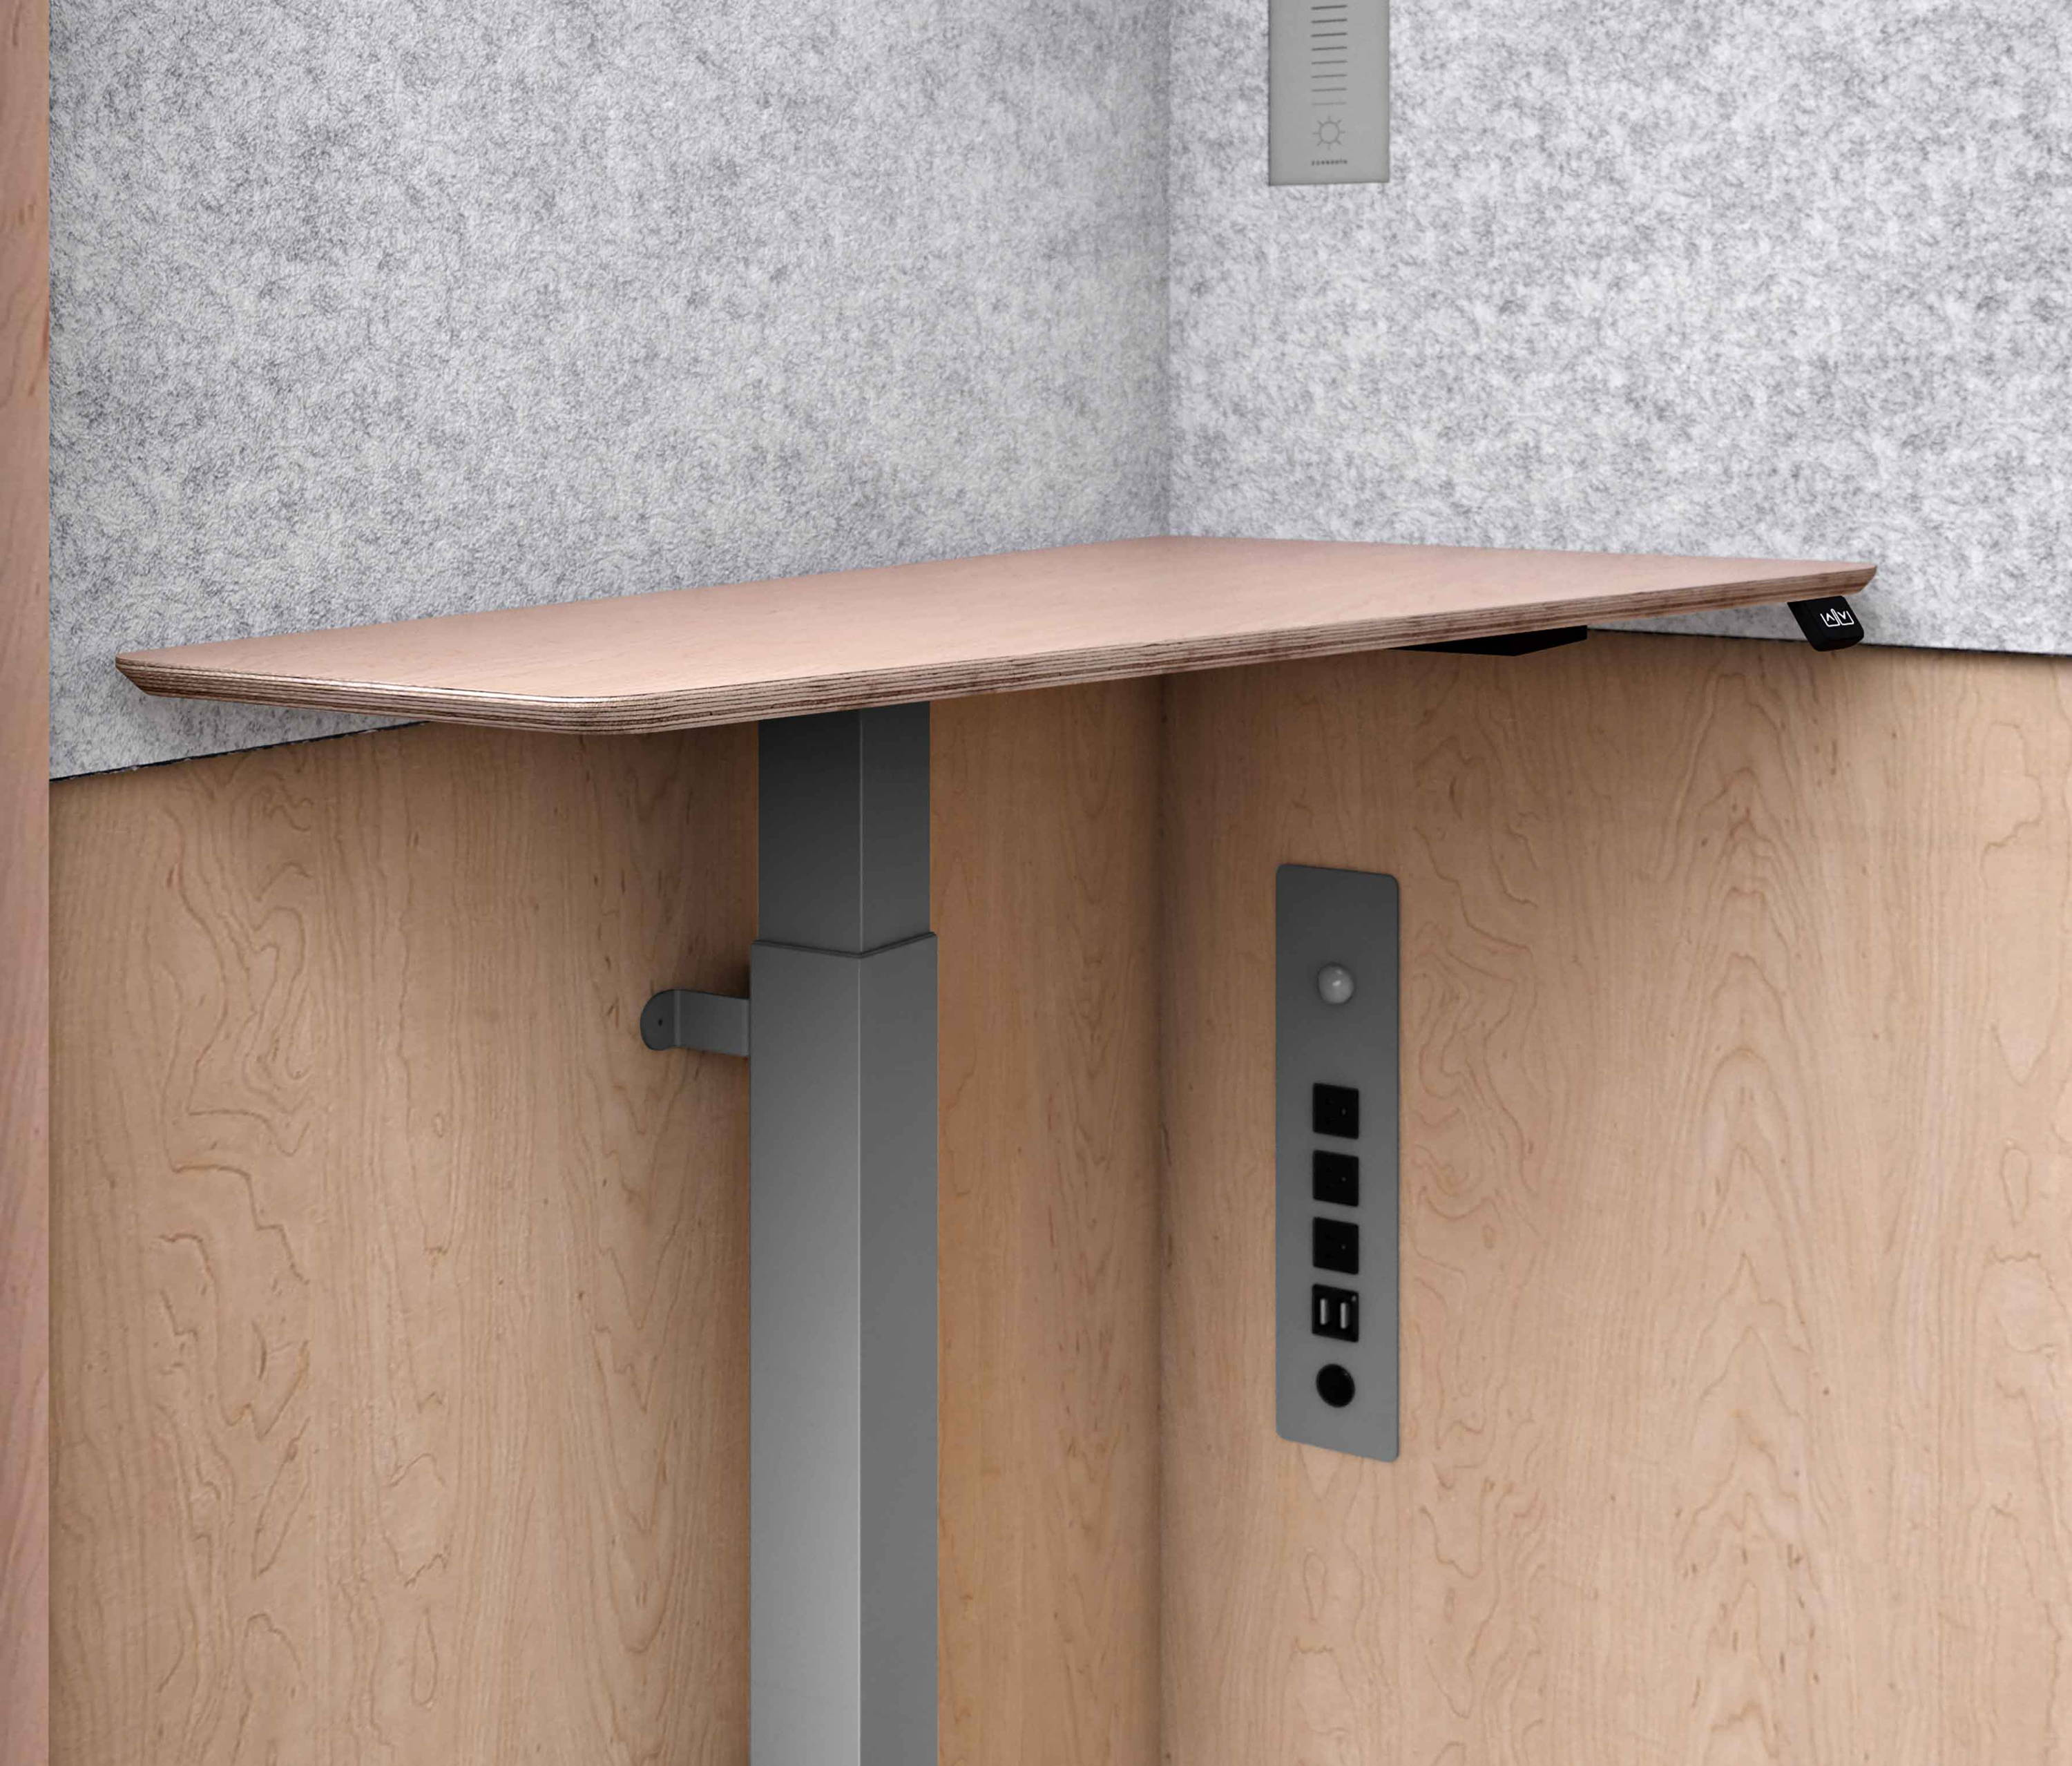 Zenbooth Adjustable Desk | Office Phone Booths